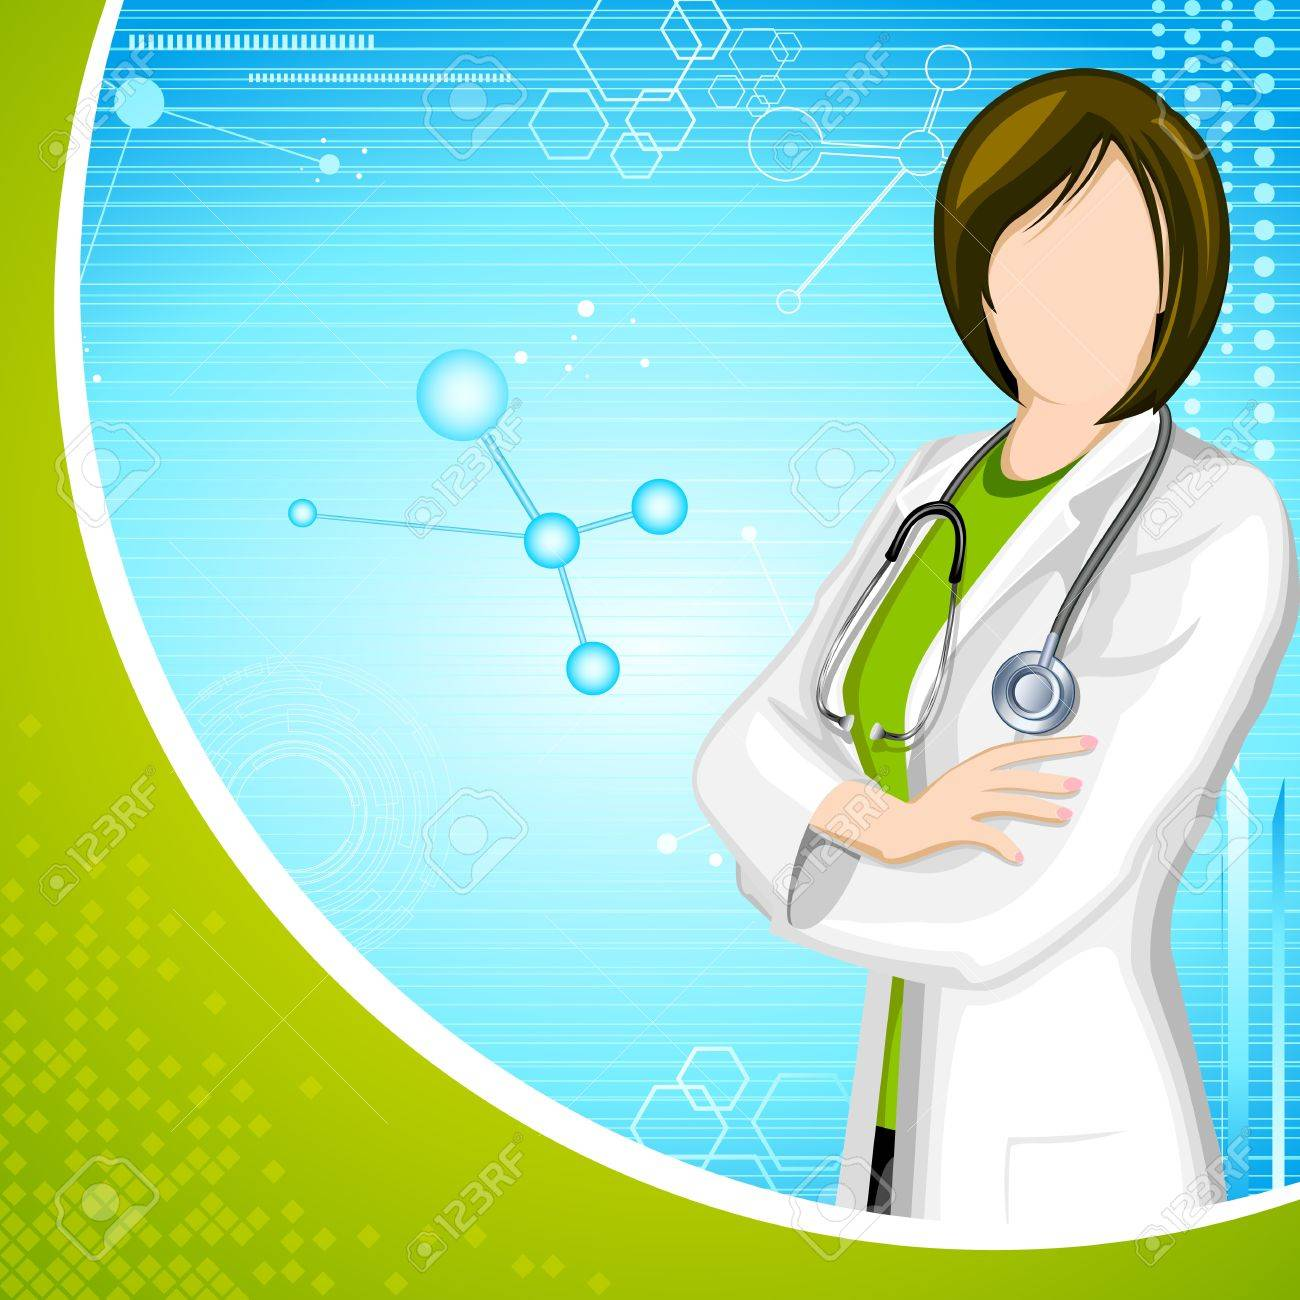 illustration of lady doctor with stethoscope on medical background - 15632192